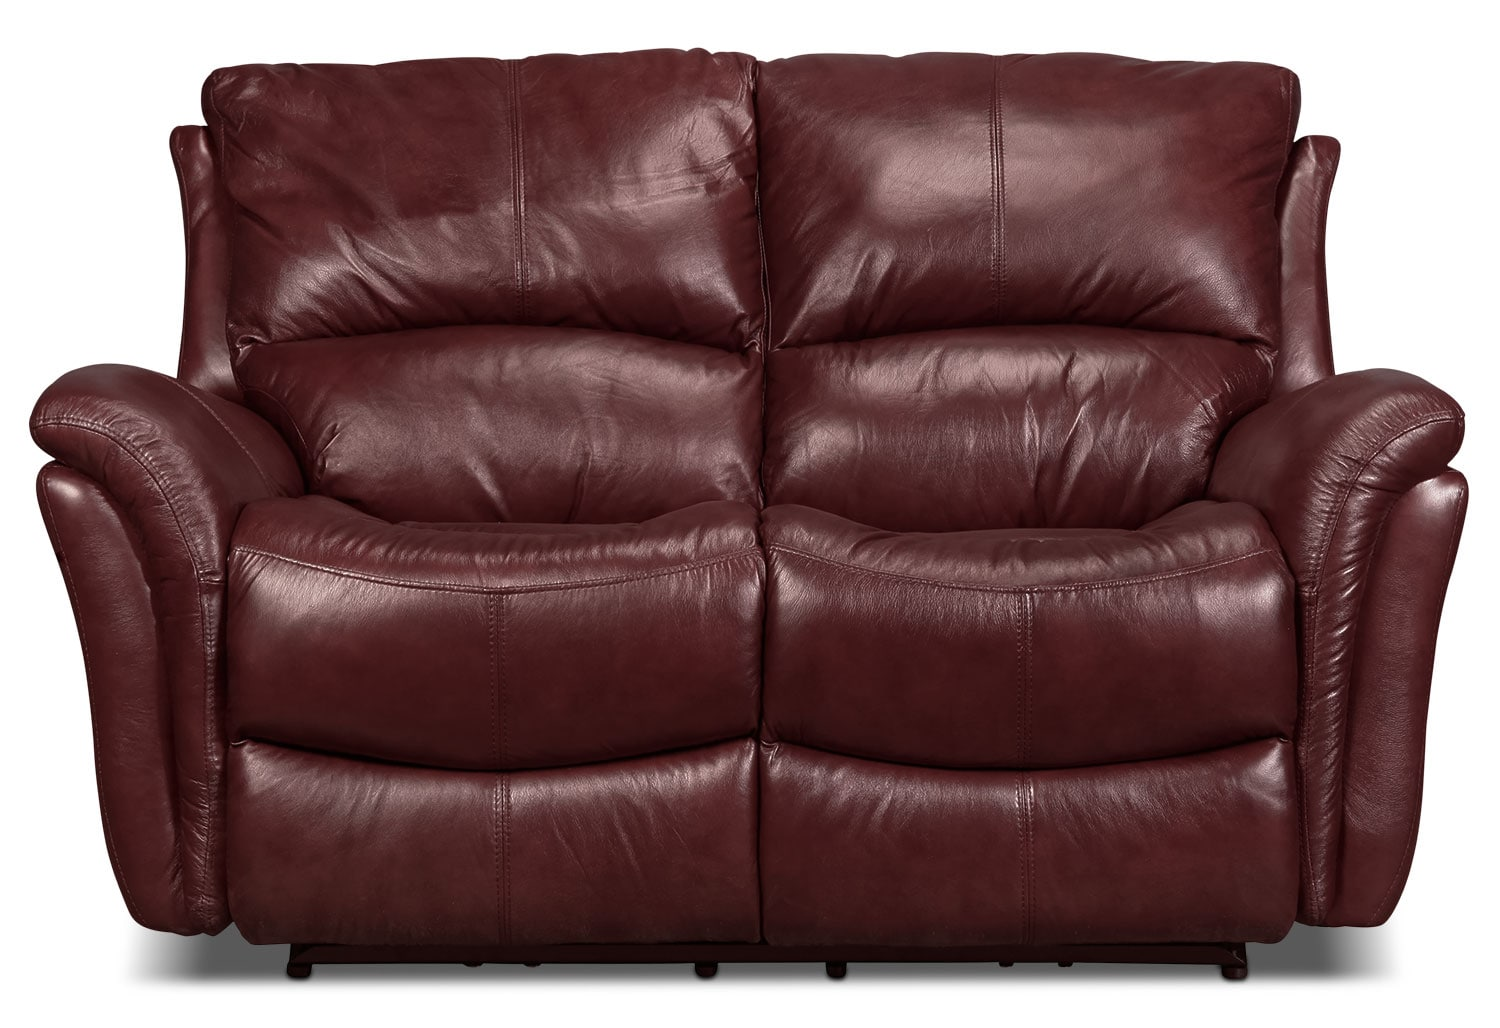 Griffin Power Reclining Loveseat - Red